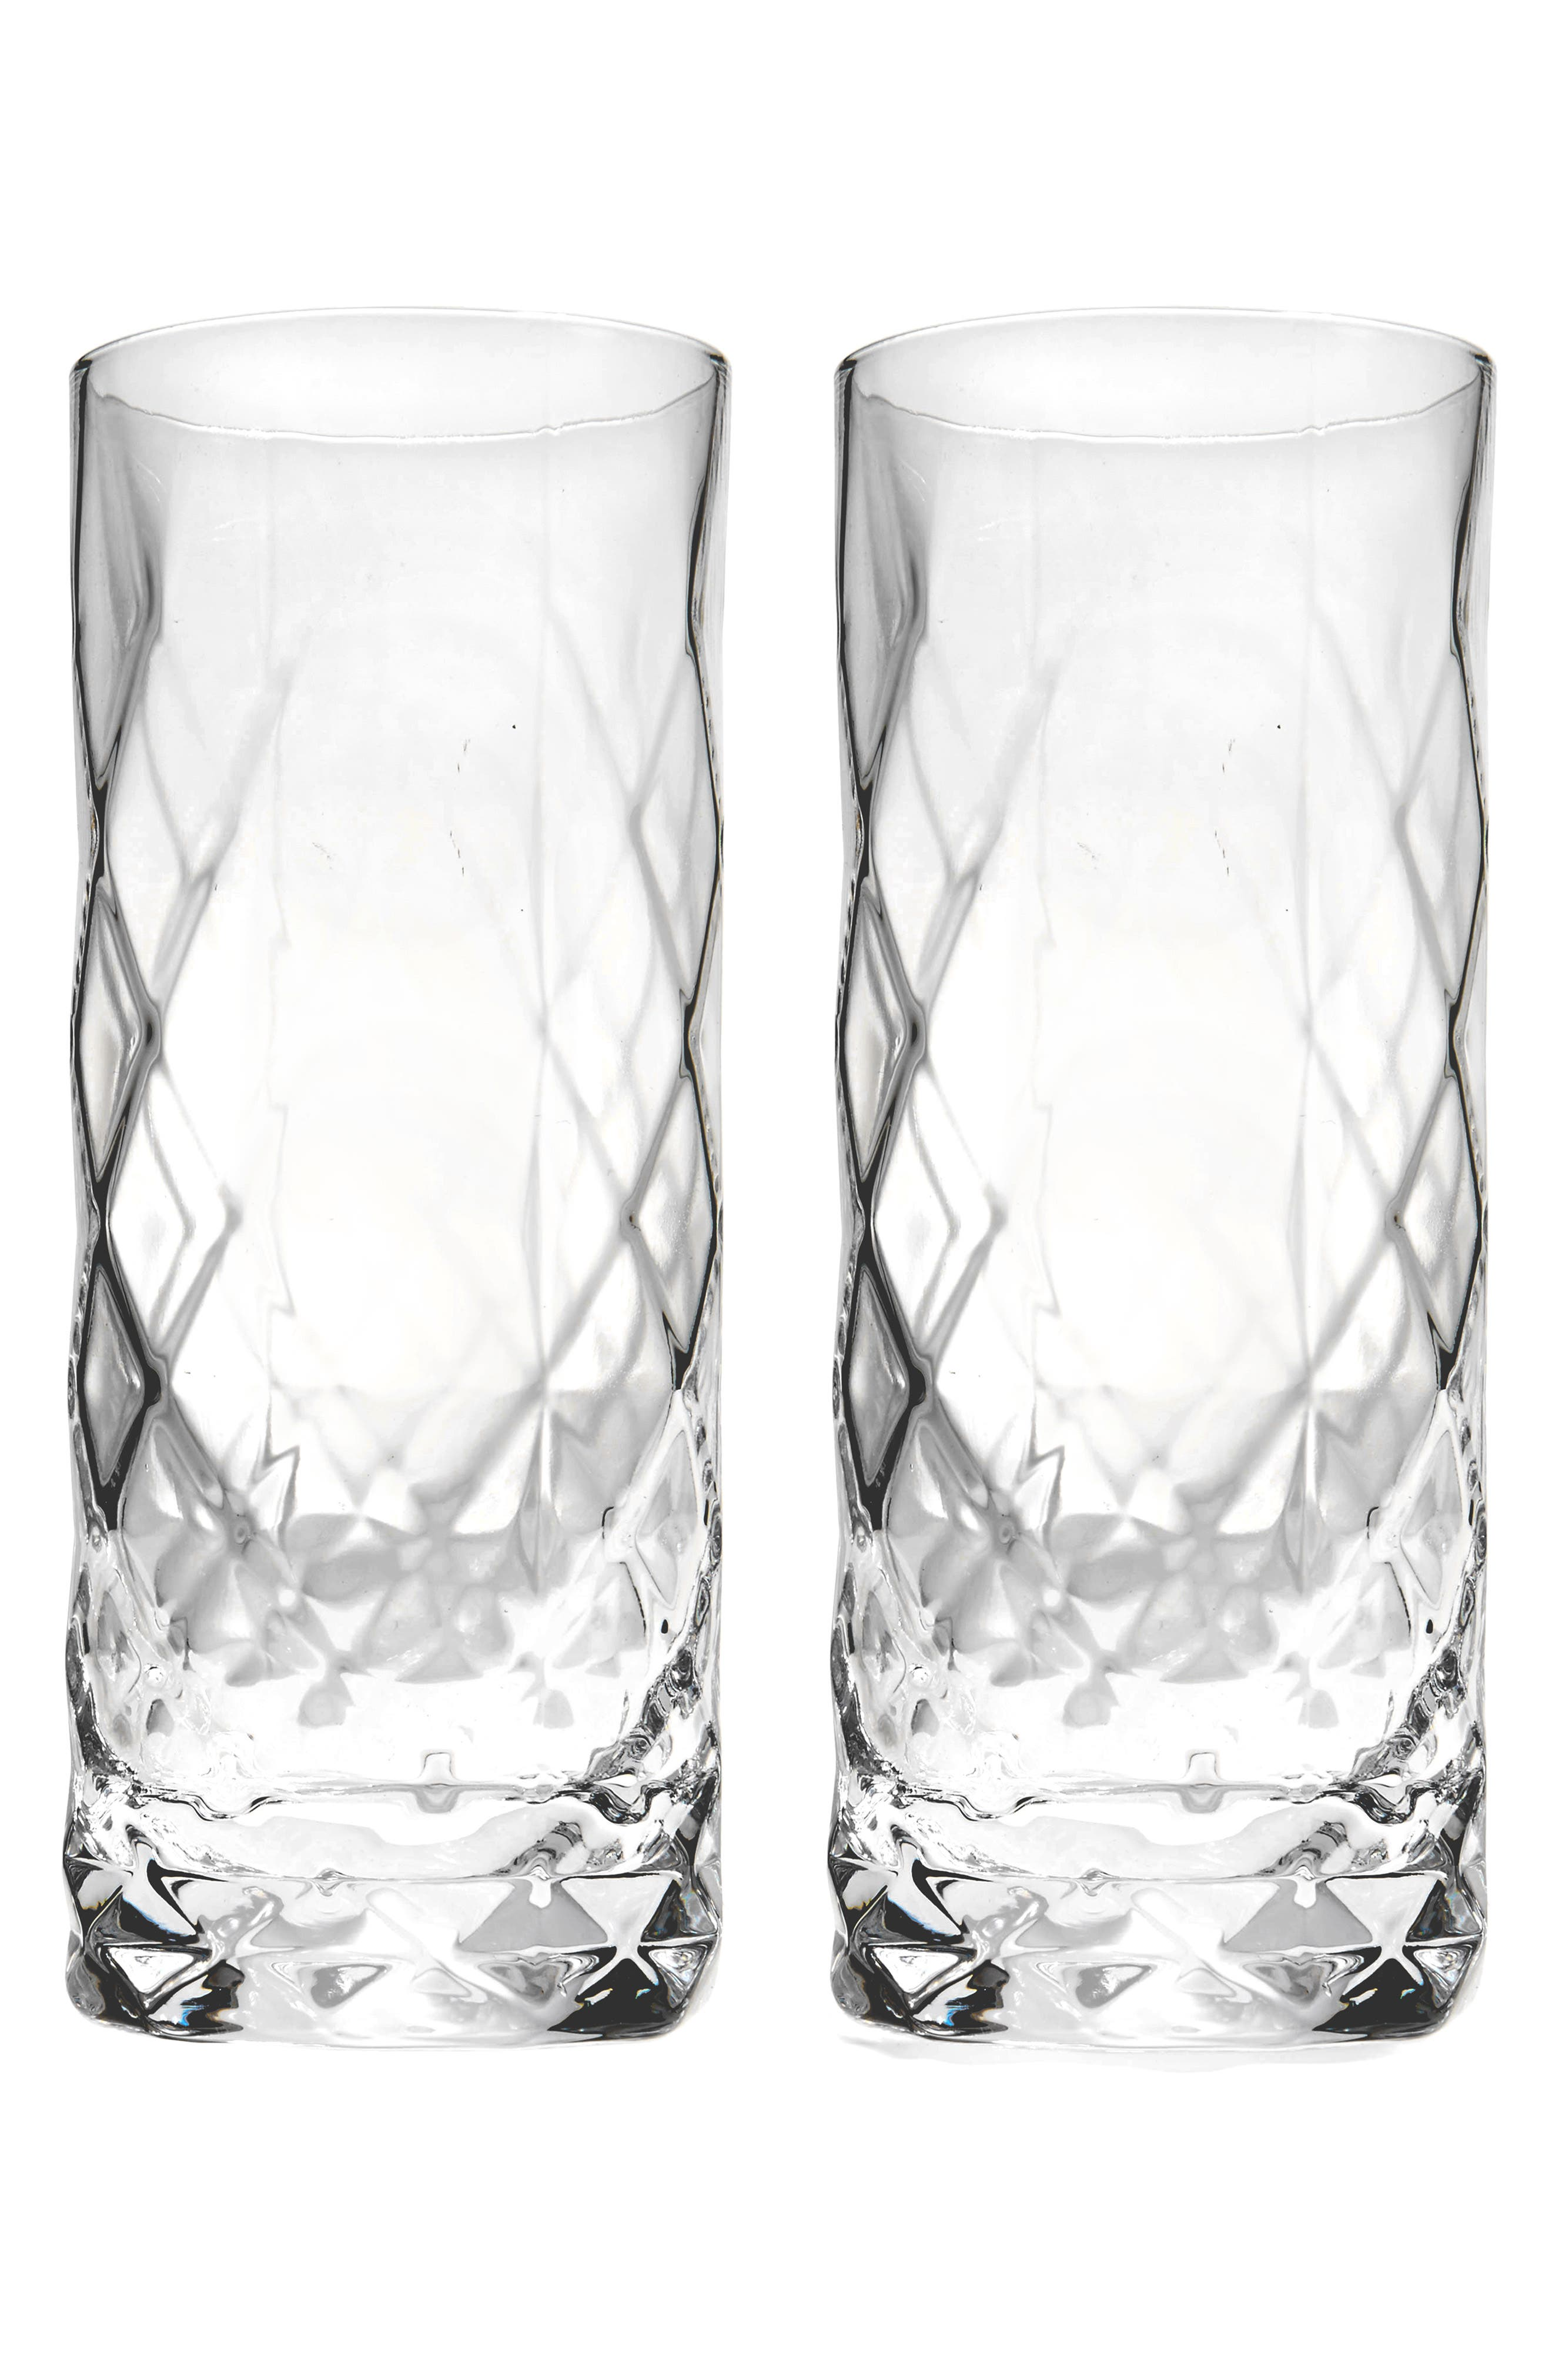 Set of 2 Highball Glasses,                             Main thumbnail 1, color,                             100